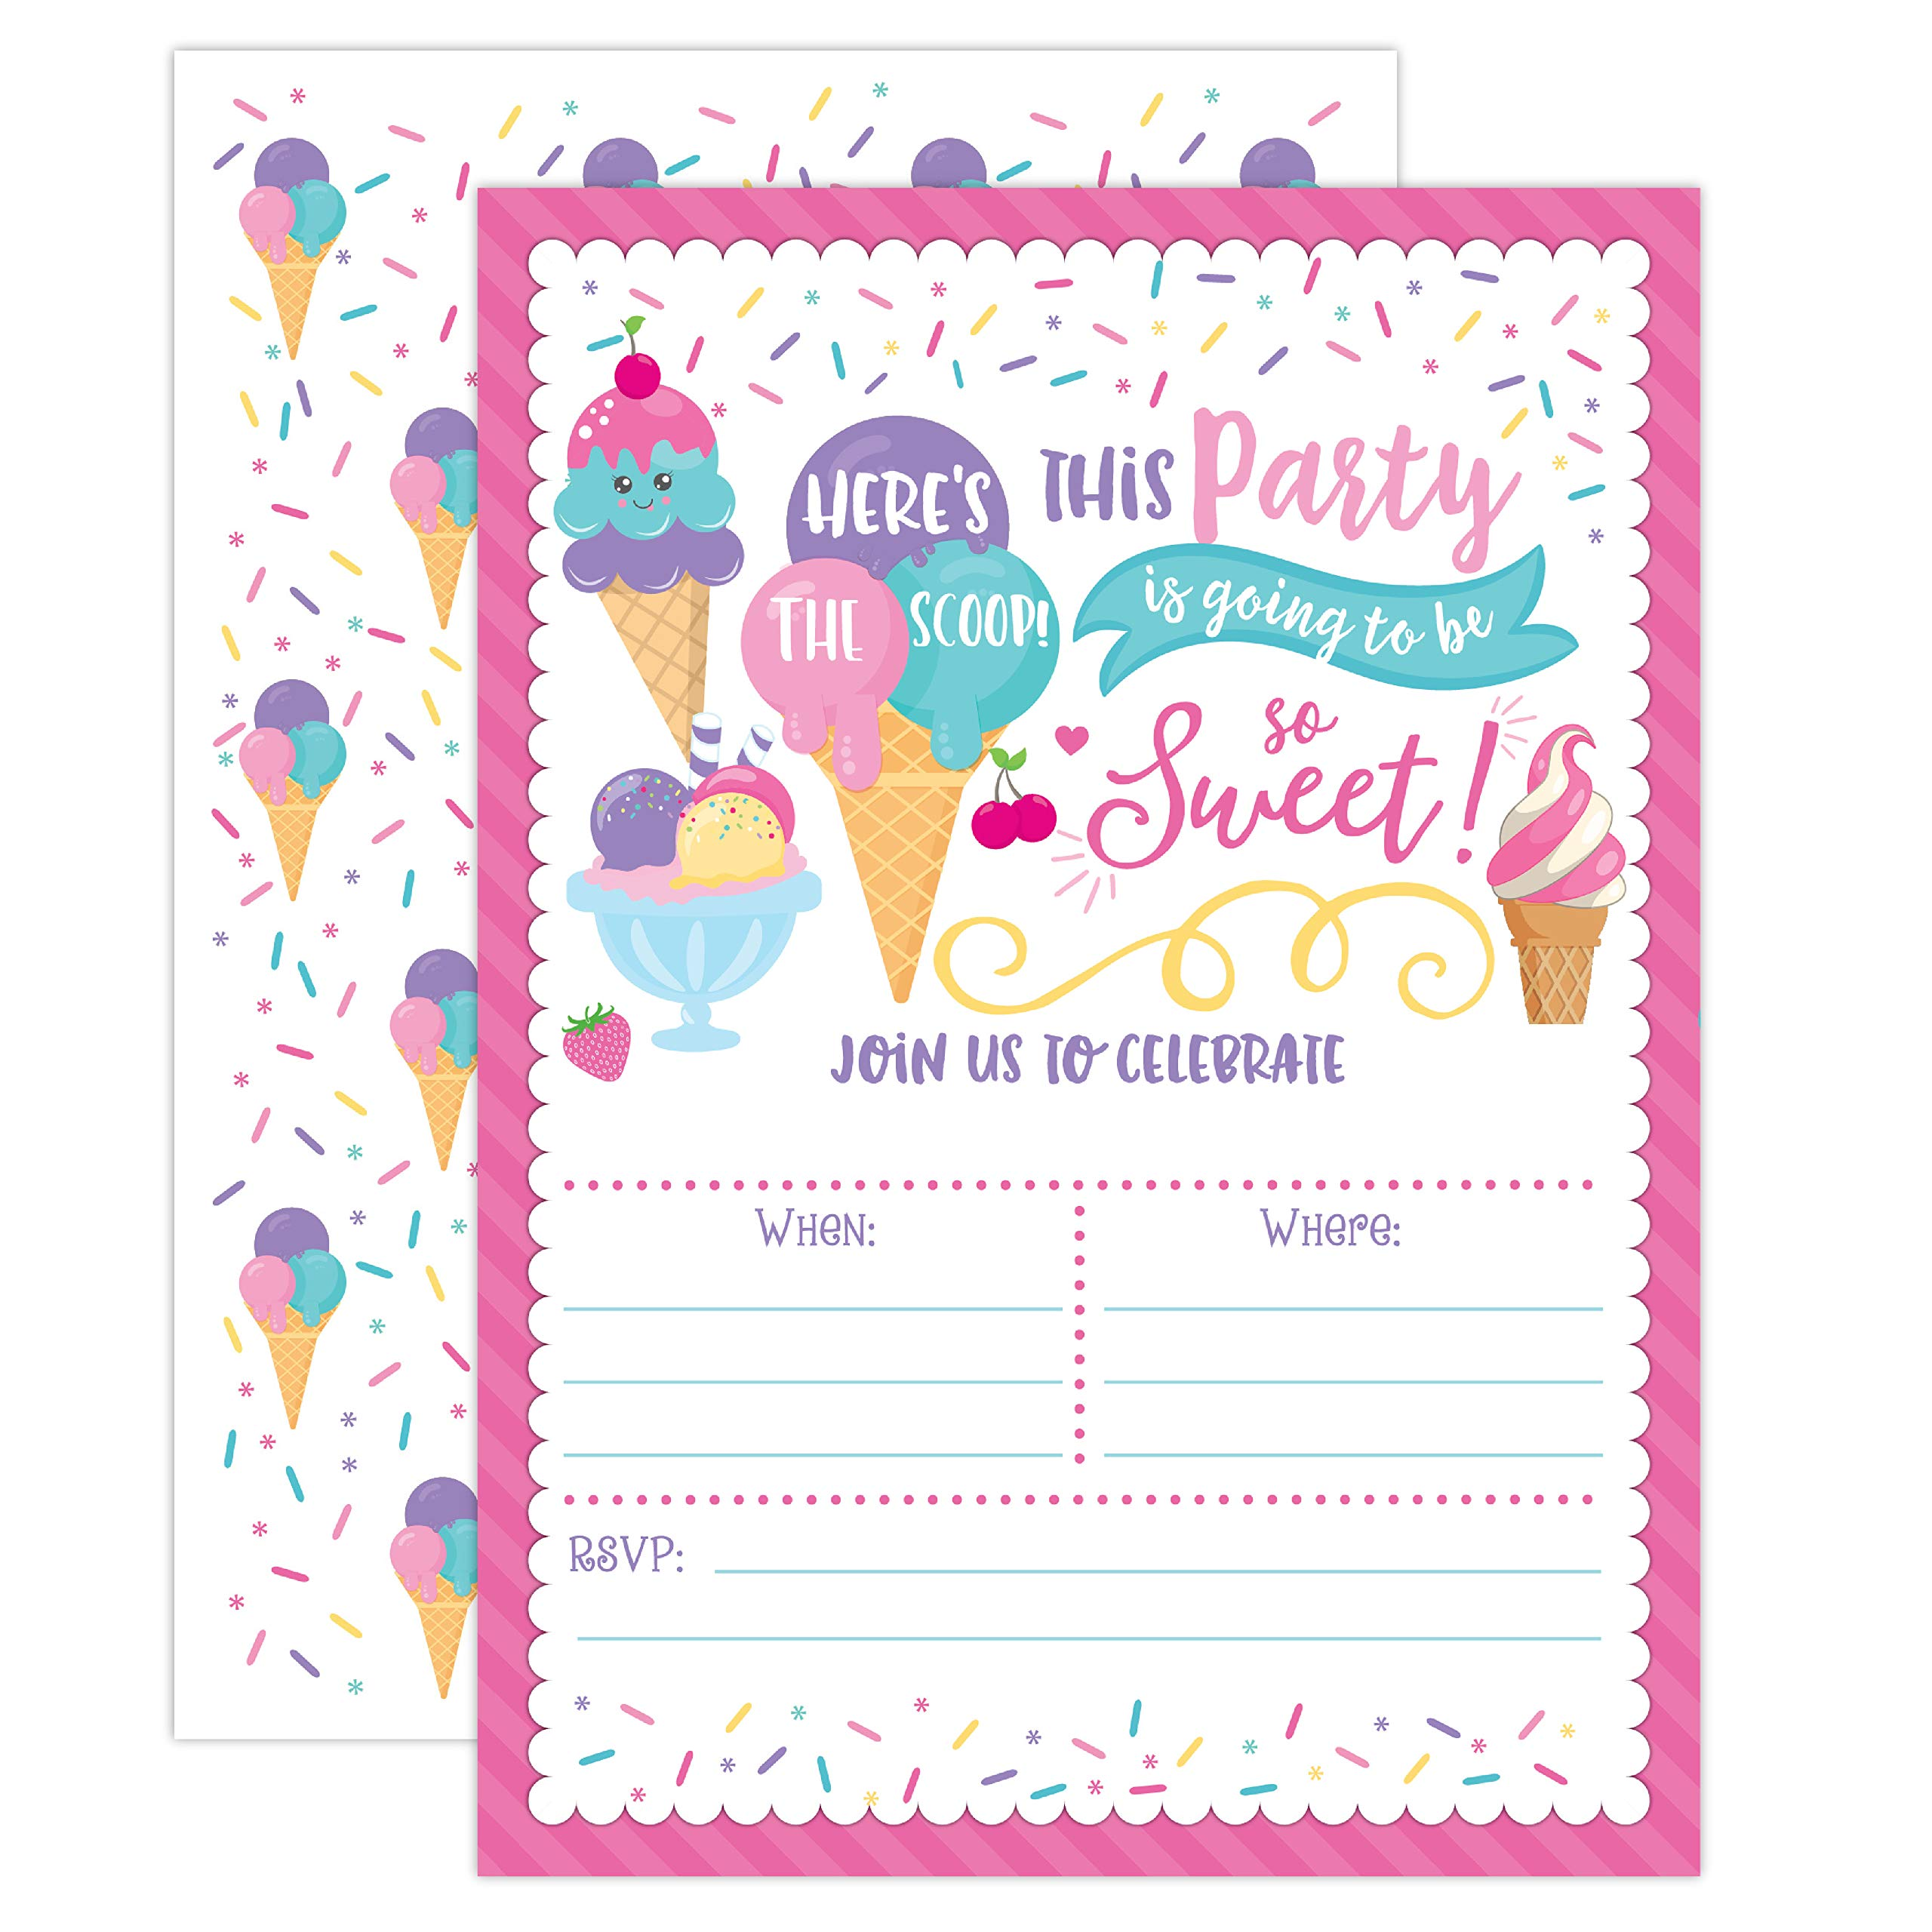 Ice Cream Birthday Party Invitations, Girl Birthday Invitations, Here's The Scoop, Ice Cream Social, 20 Fill in Invitations and Envelopes